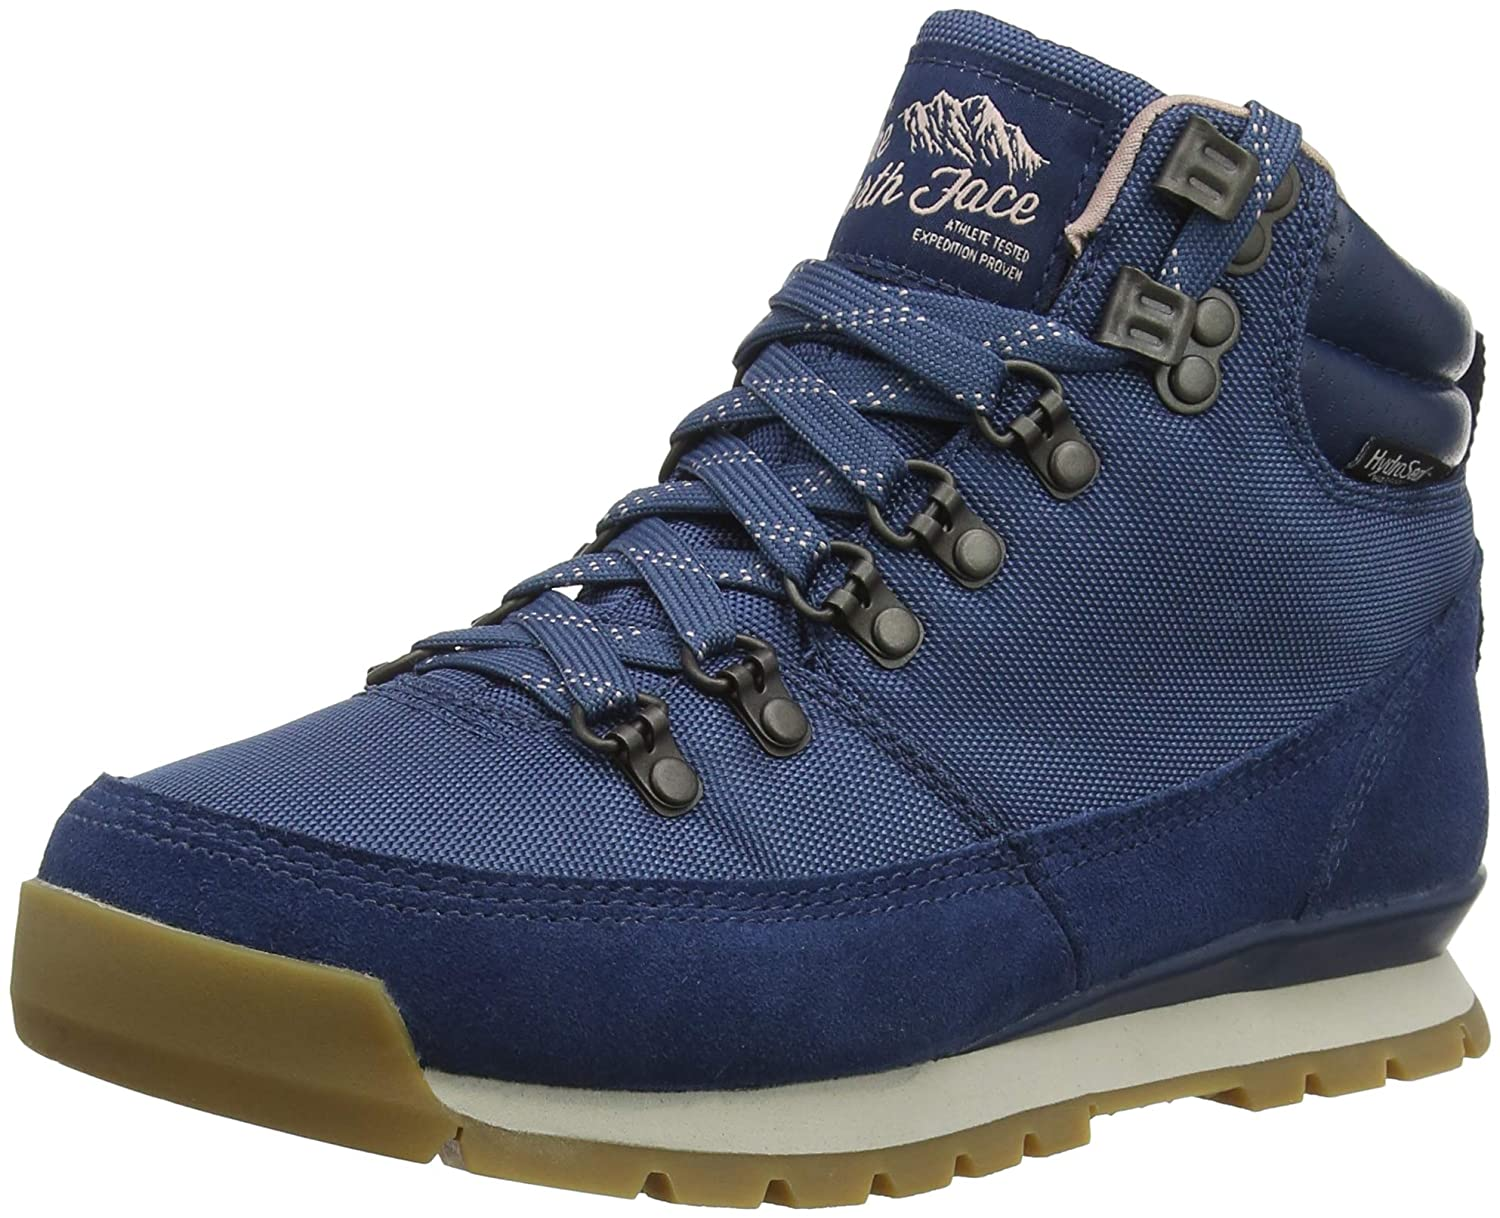 TALLA 37 EU. The North Face Back-to-Berkeley Redux, Botas de Senderismo para Mujer